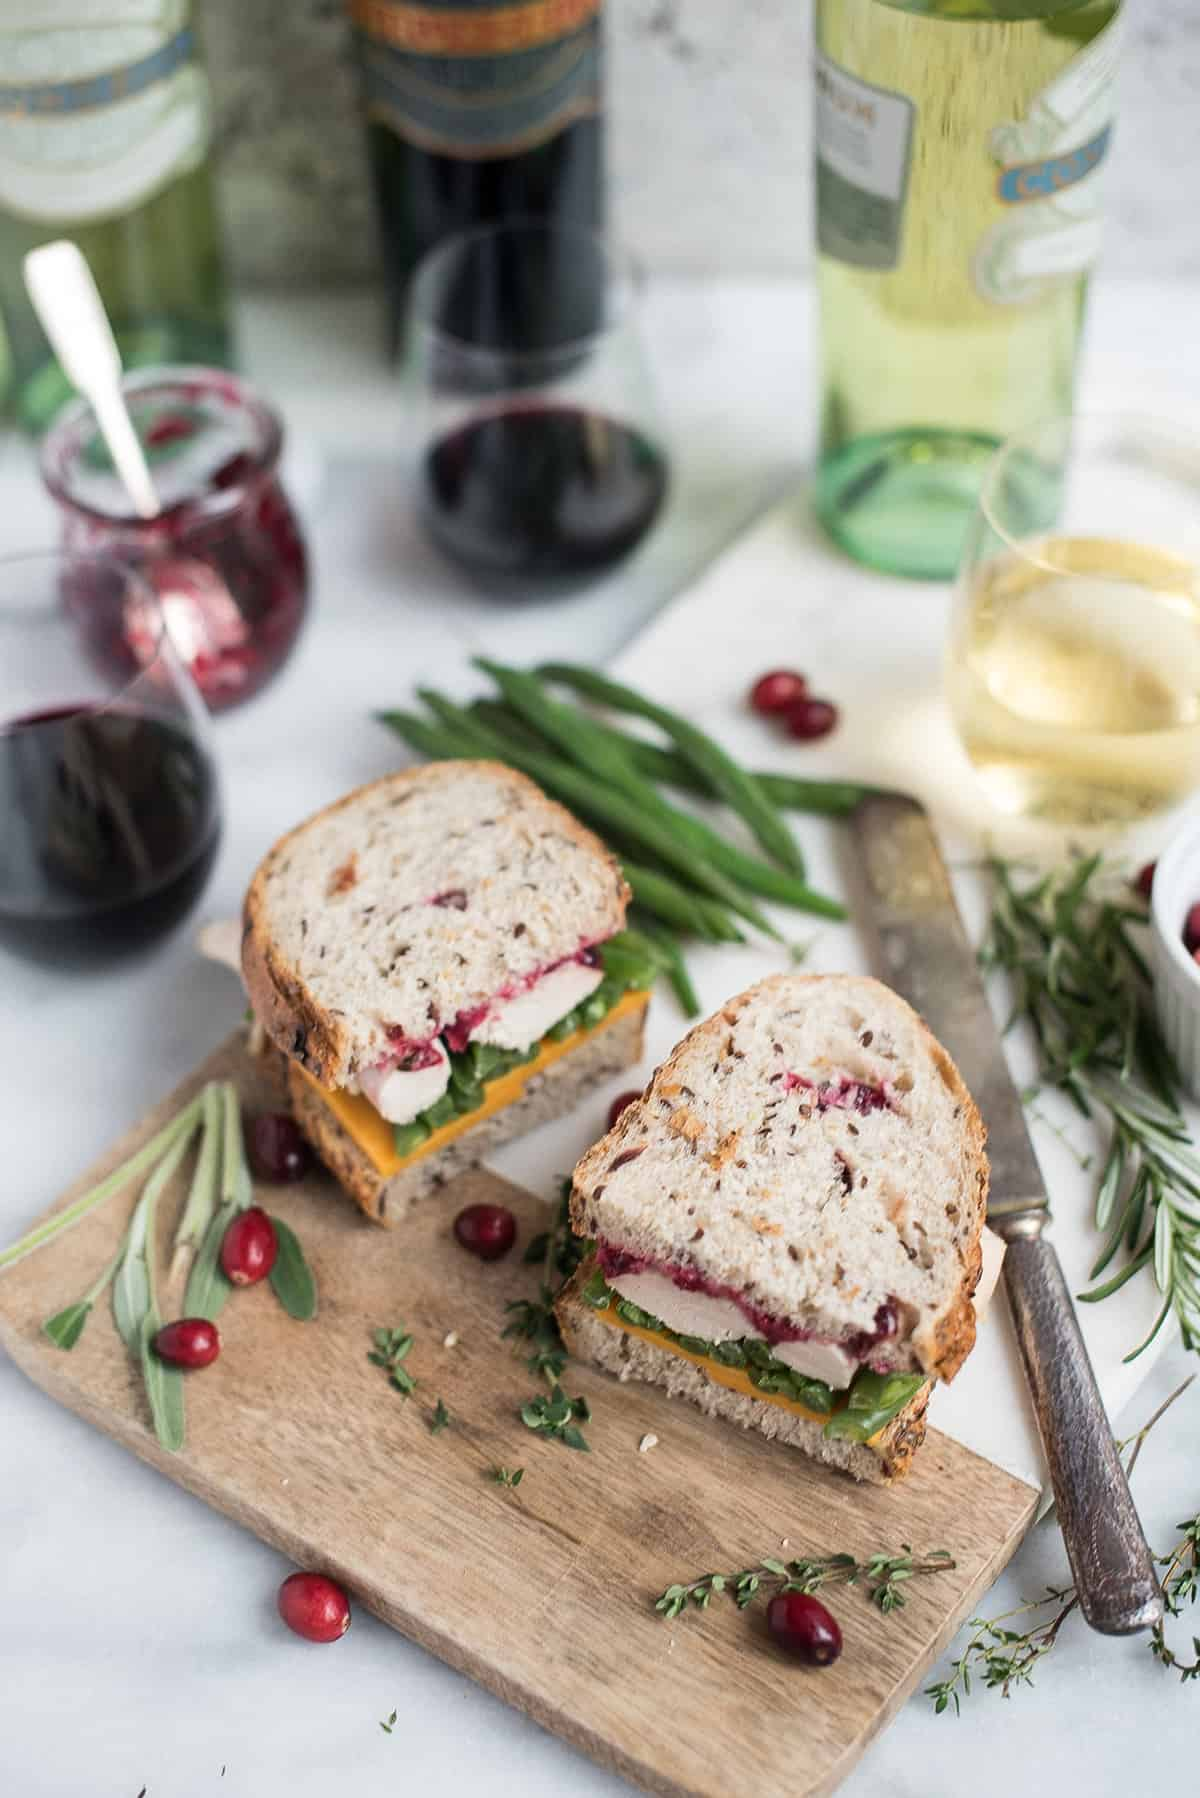 turkey sandwich cut in half on board with knife and red wine